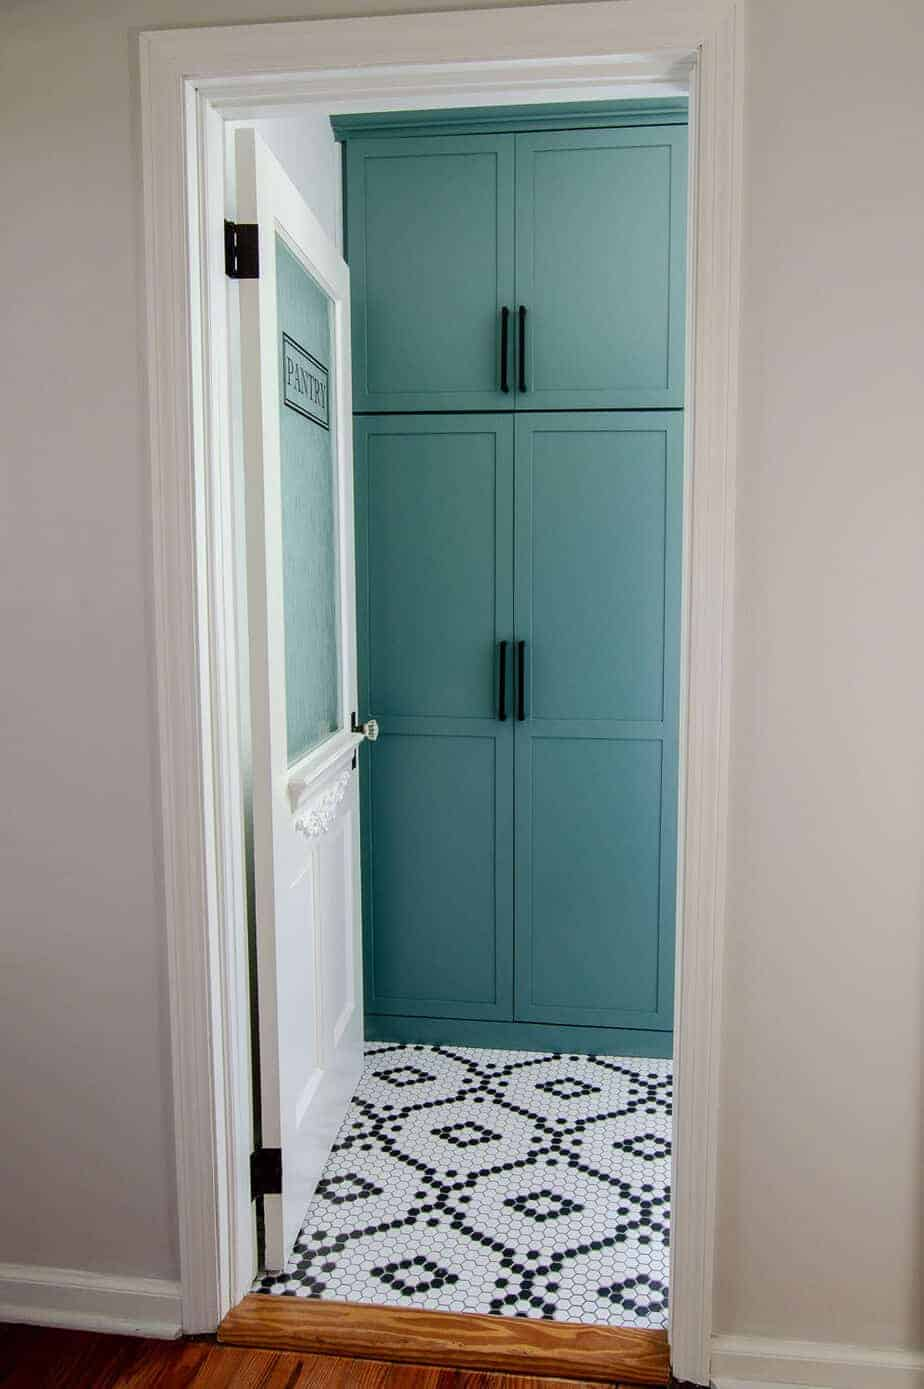 walk in pantry remodel with cabinets and glass pantry door